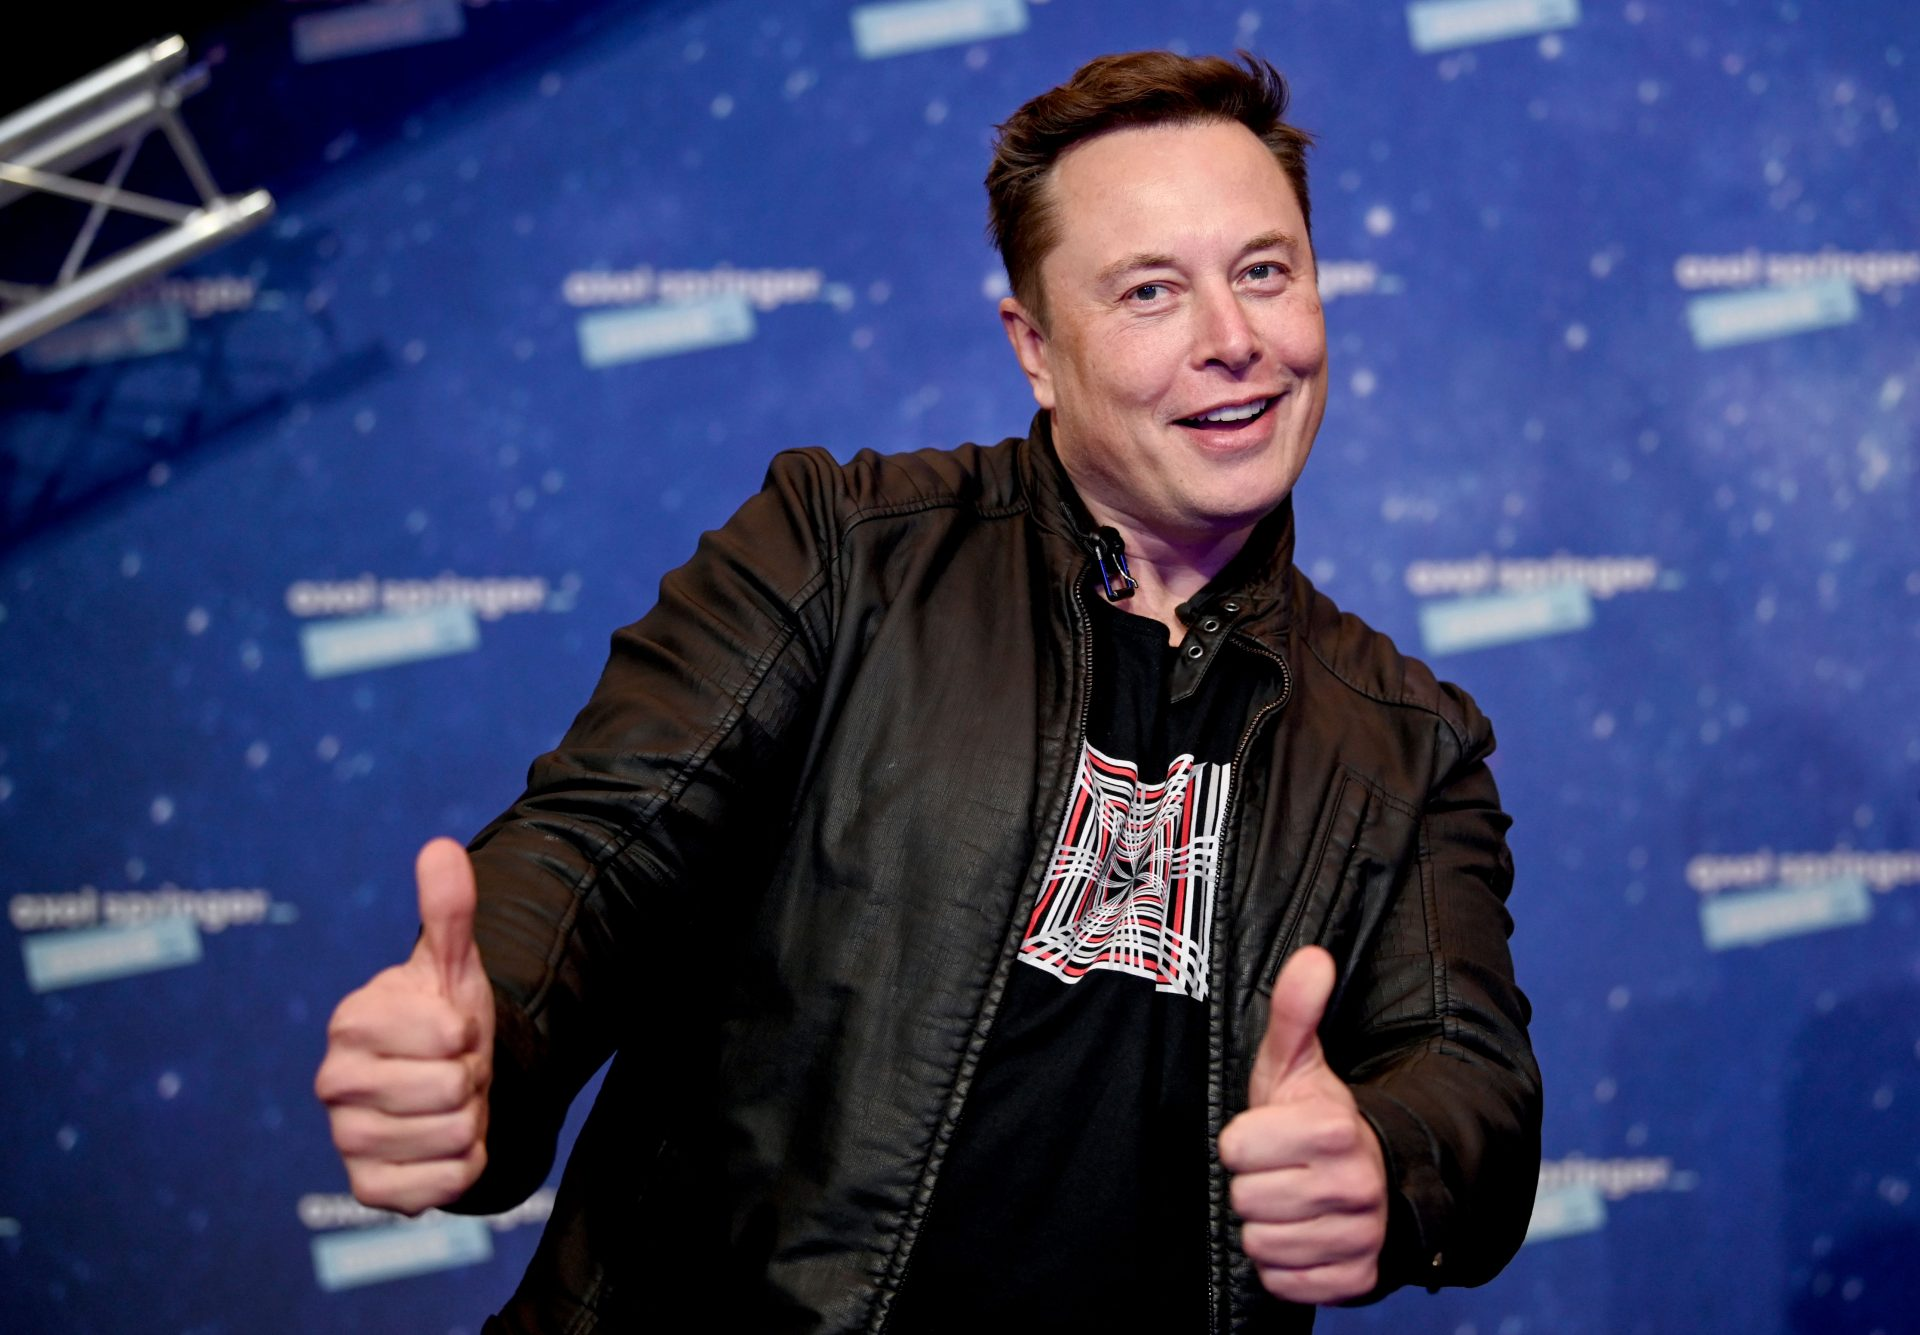 Elon Musk, World's Wealthiest Person, Touts Bitcoin Over Cash